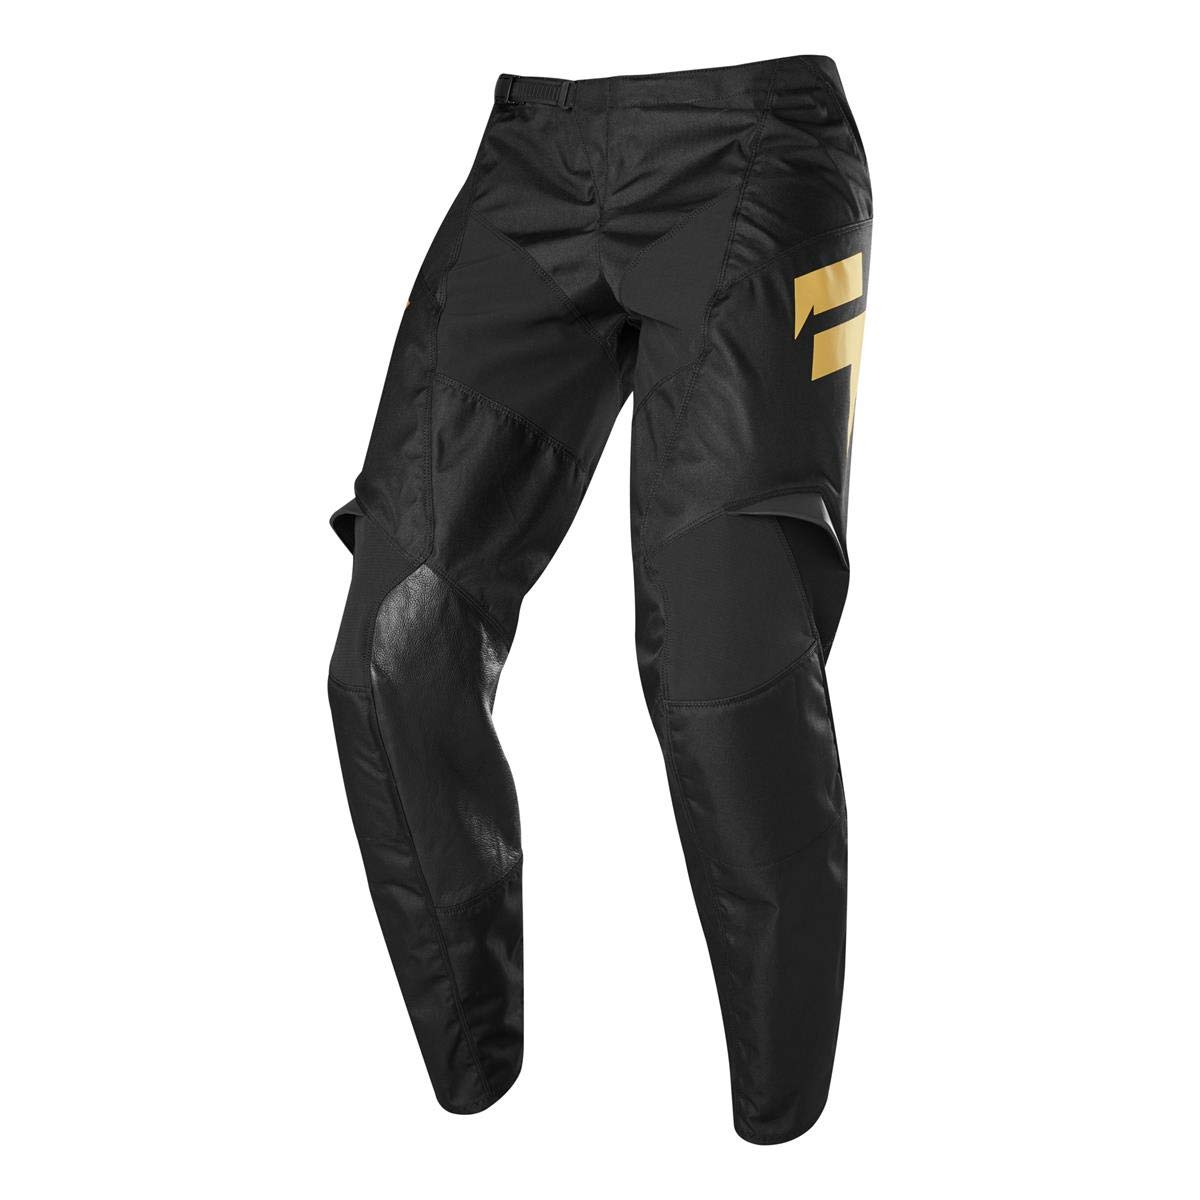 Shift Racing Whit3 Label Muerte LE Youth Off-Road Motorcycle Pants Black//Gold 22